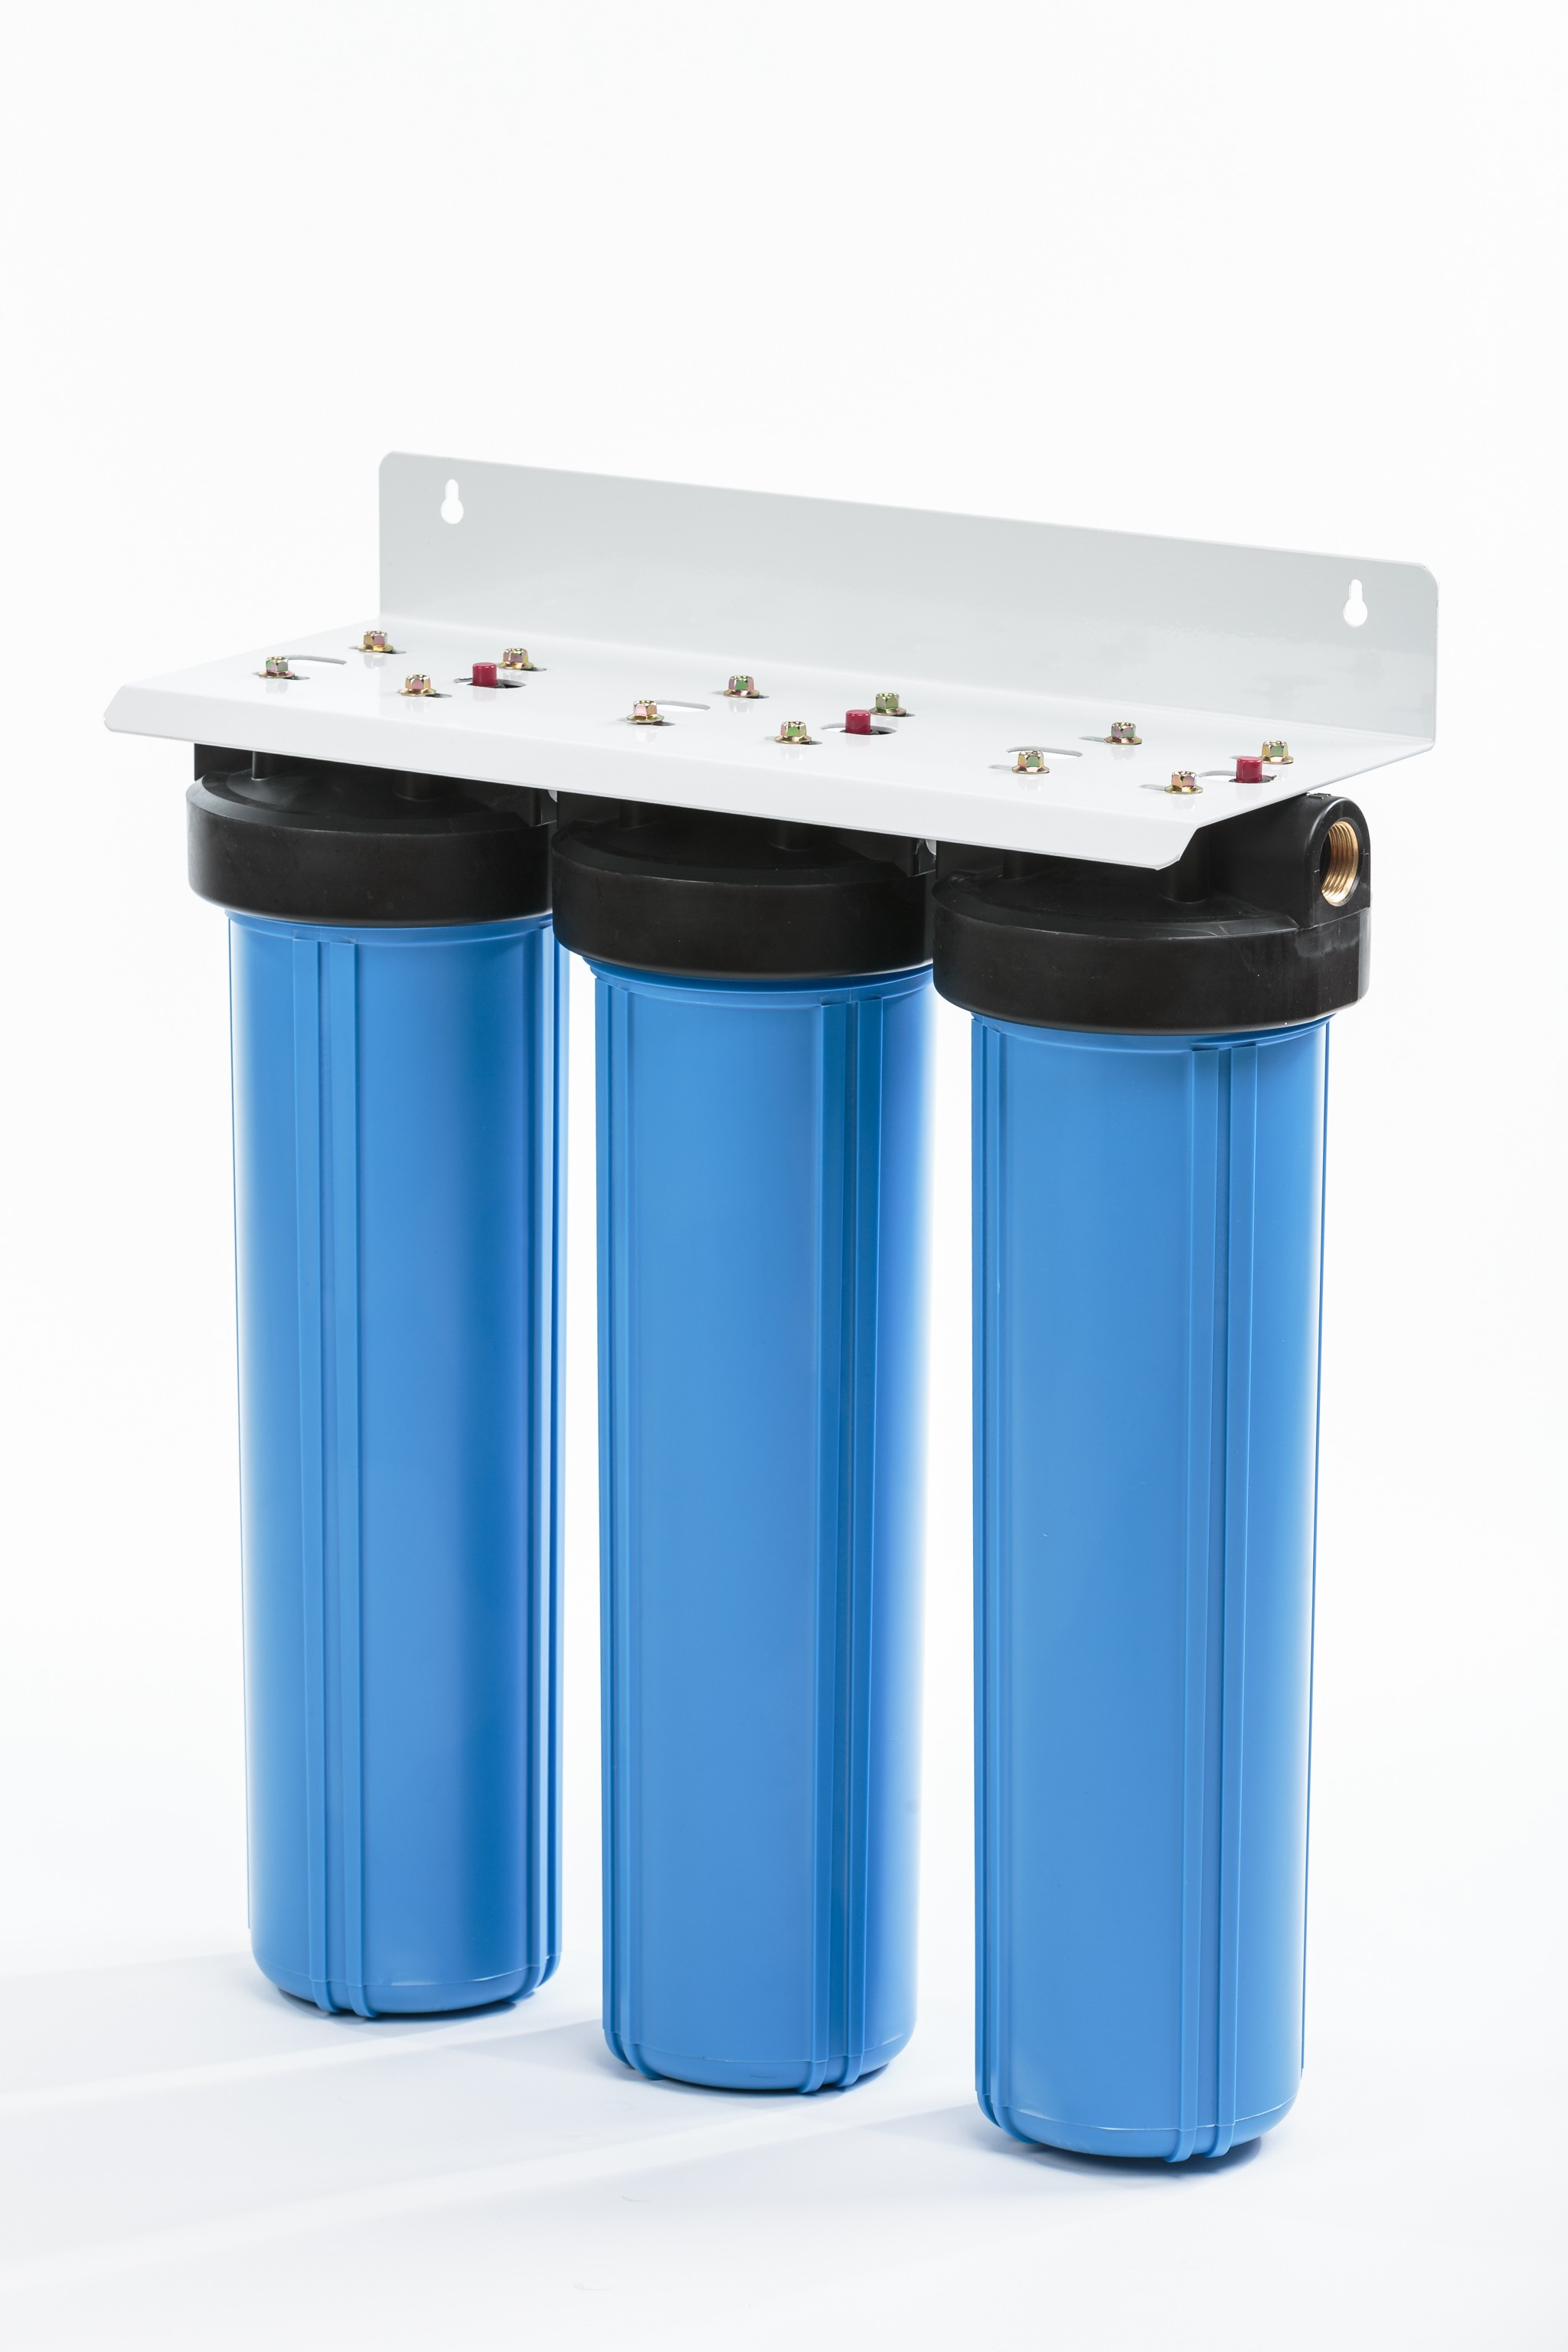 PWT-TRIPLE BIG BLUE-20:  WHOLE-HOUSE CARBON SYSTEM- 3 Stage System